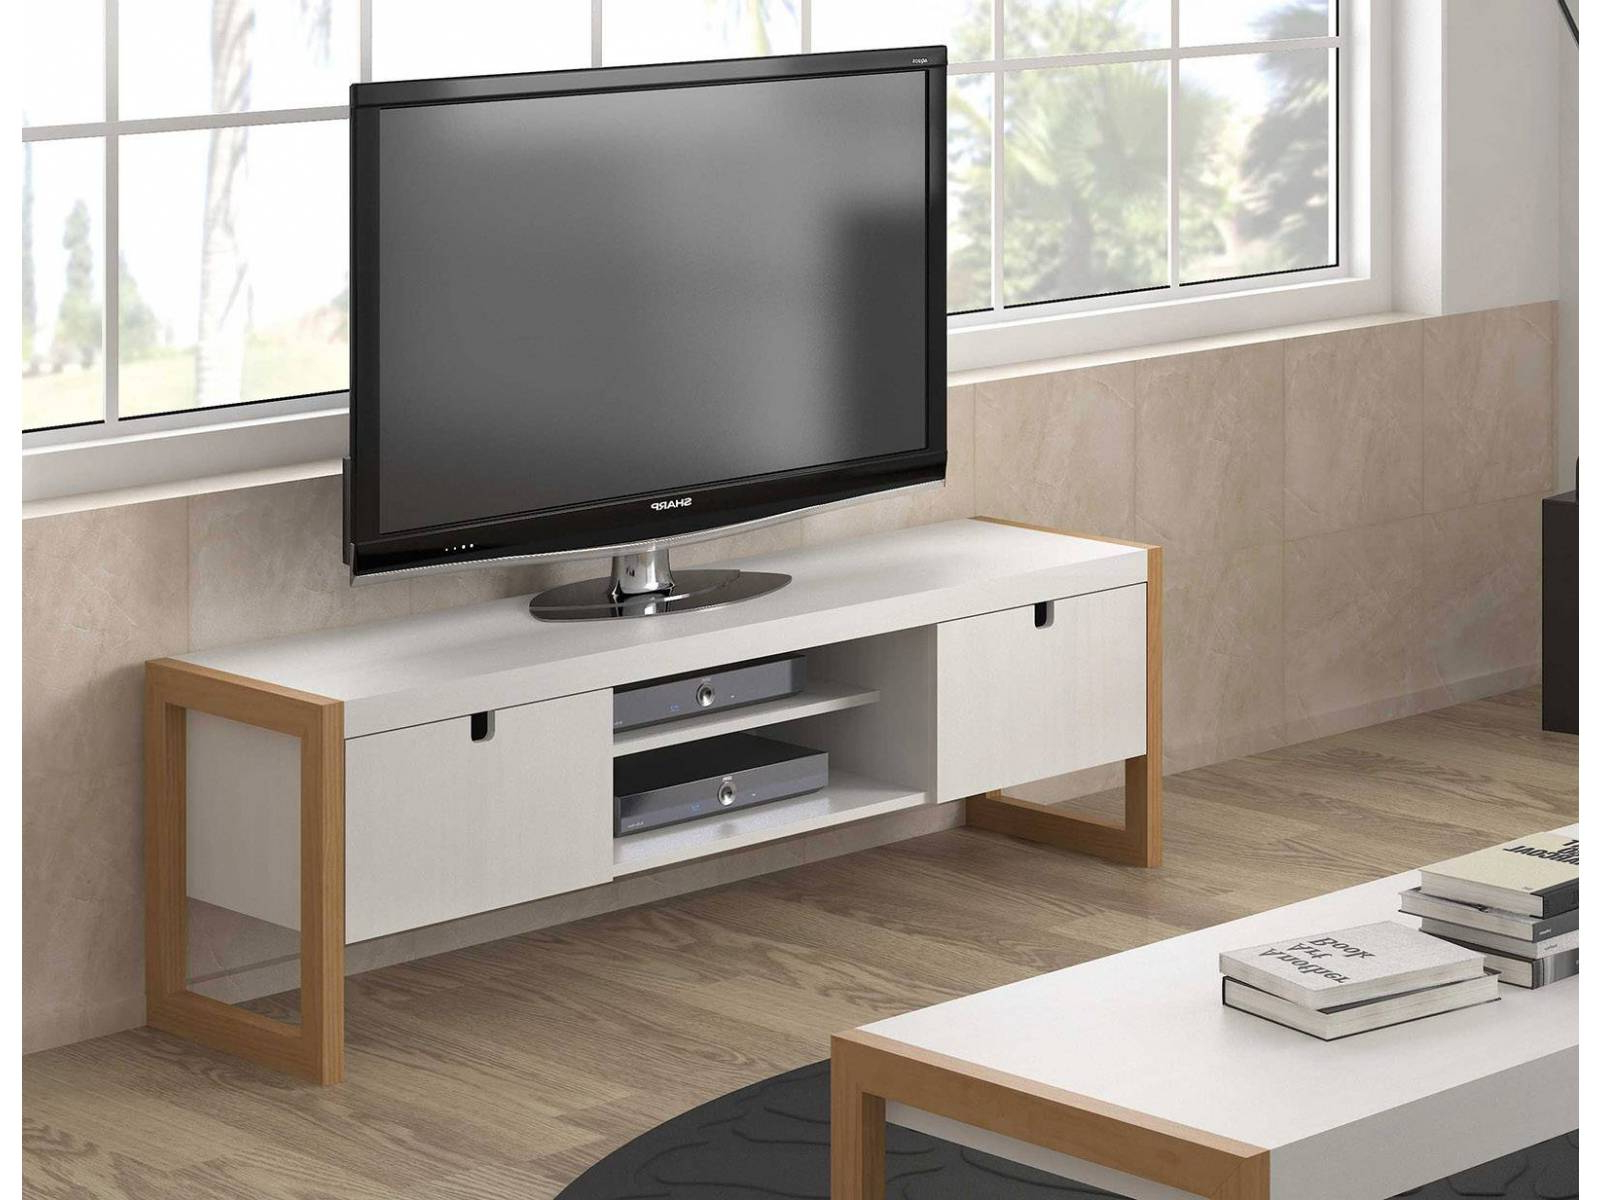 Mueble Tv Roble Ftd8 Mueble Tv 140 Cm Square Blanco Roble